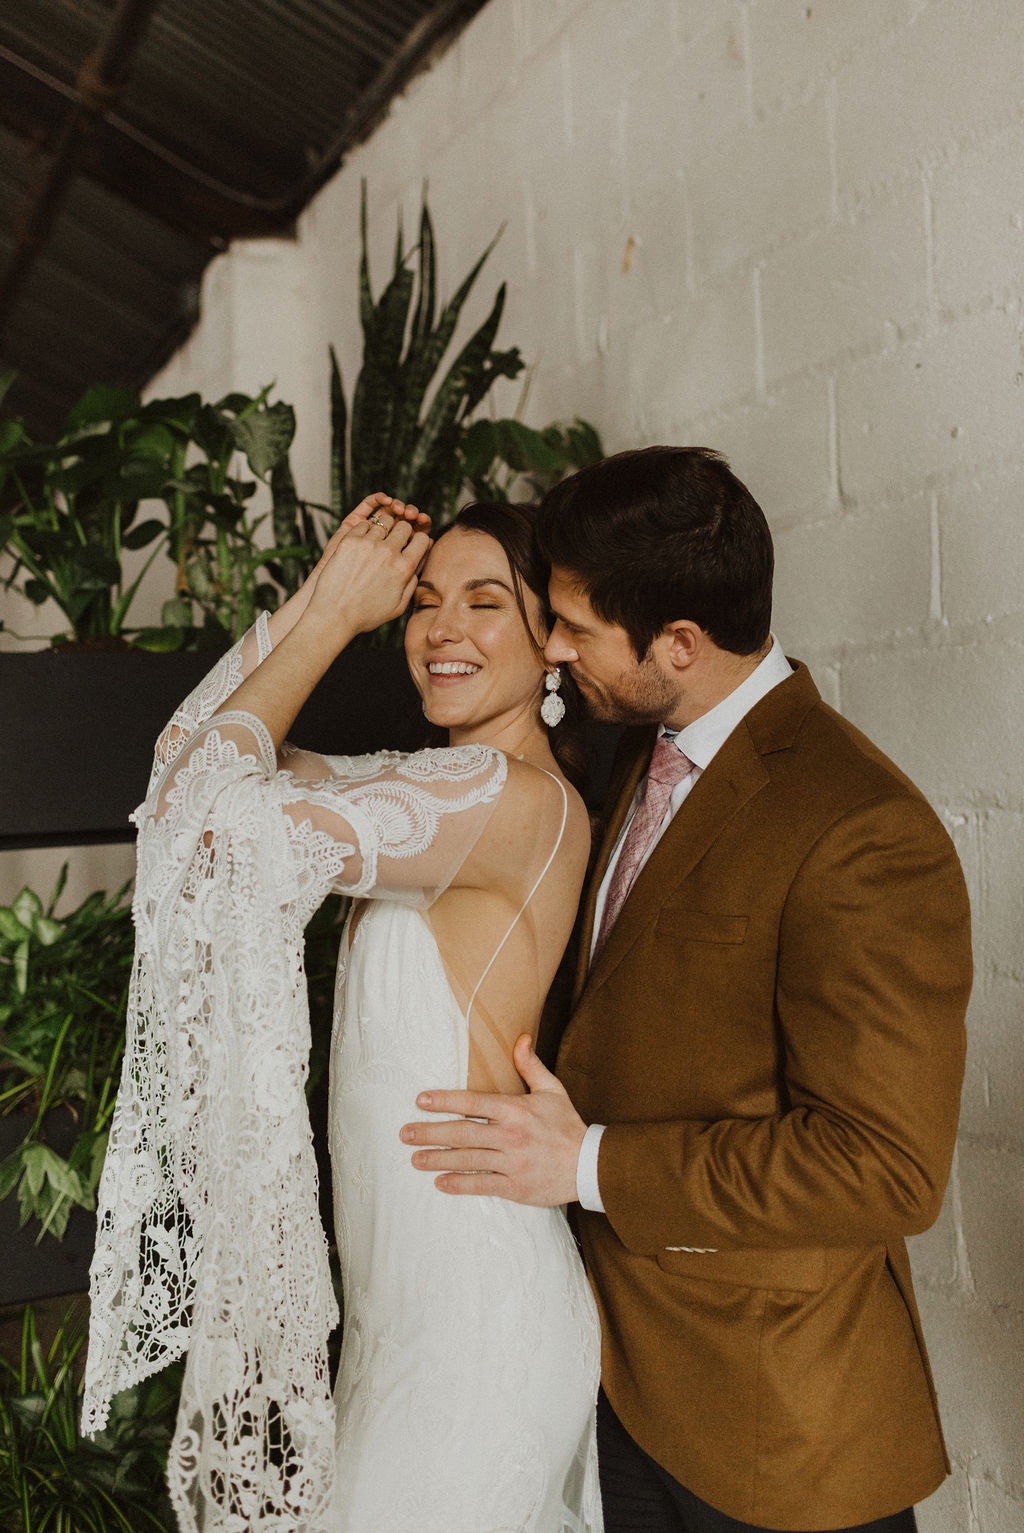 Earth Tones Wedding Inspiration Photo b y Nicole Ashley